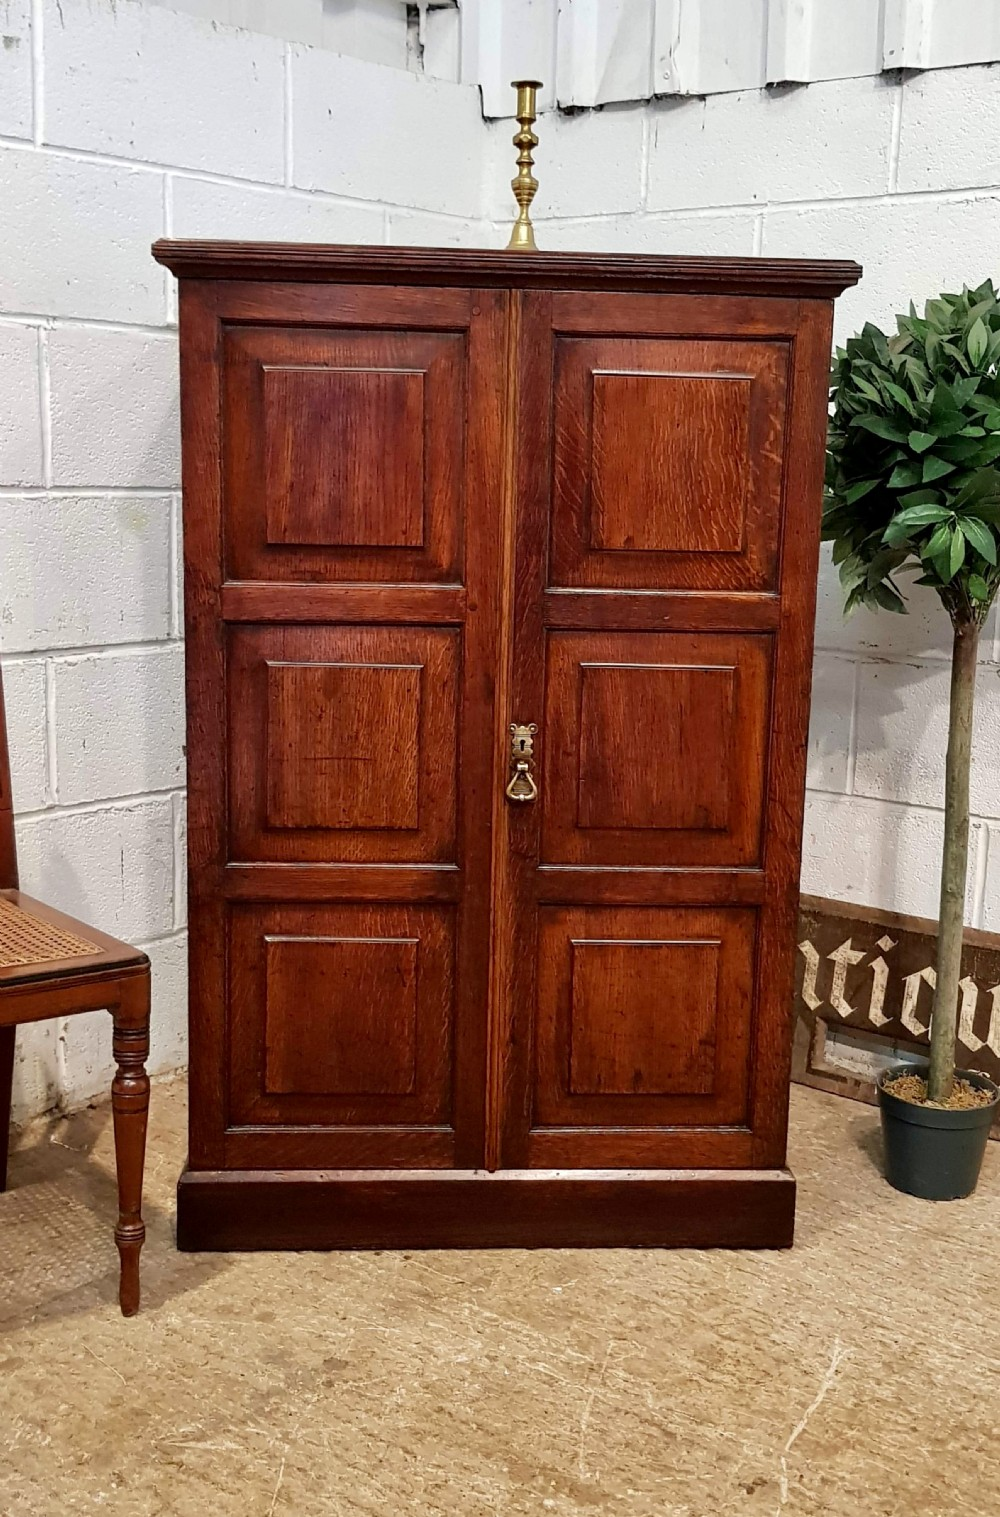 amtique victorian panelled oak cupboard c1880